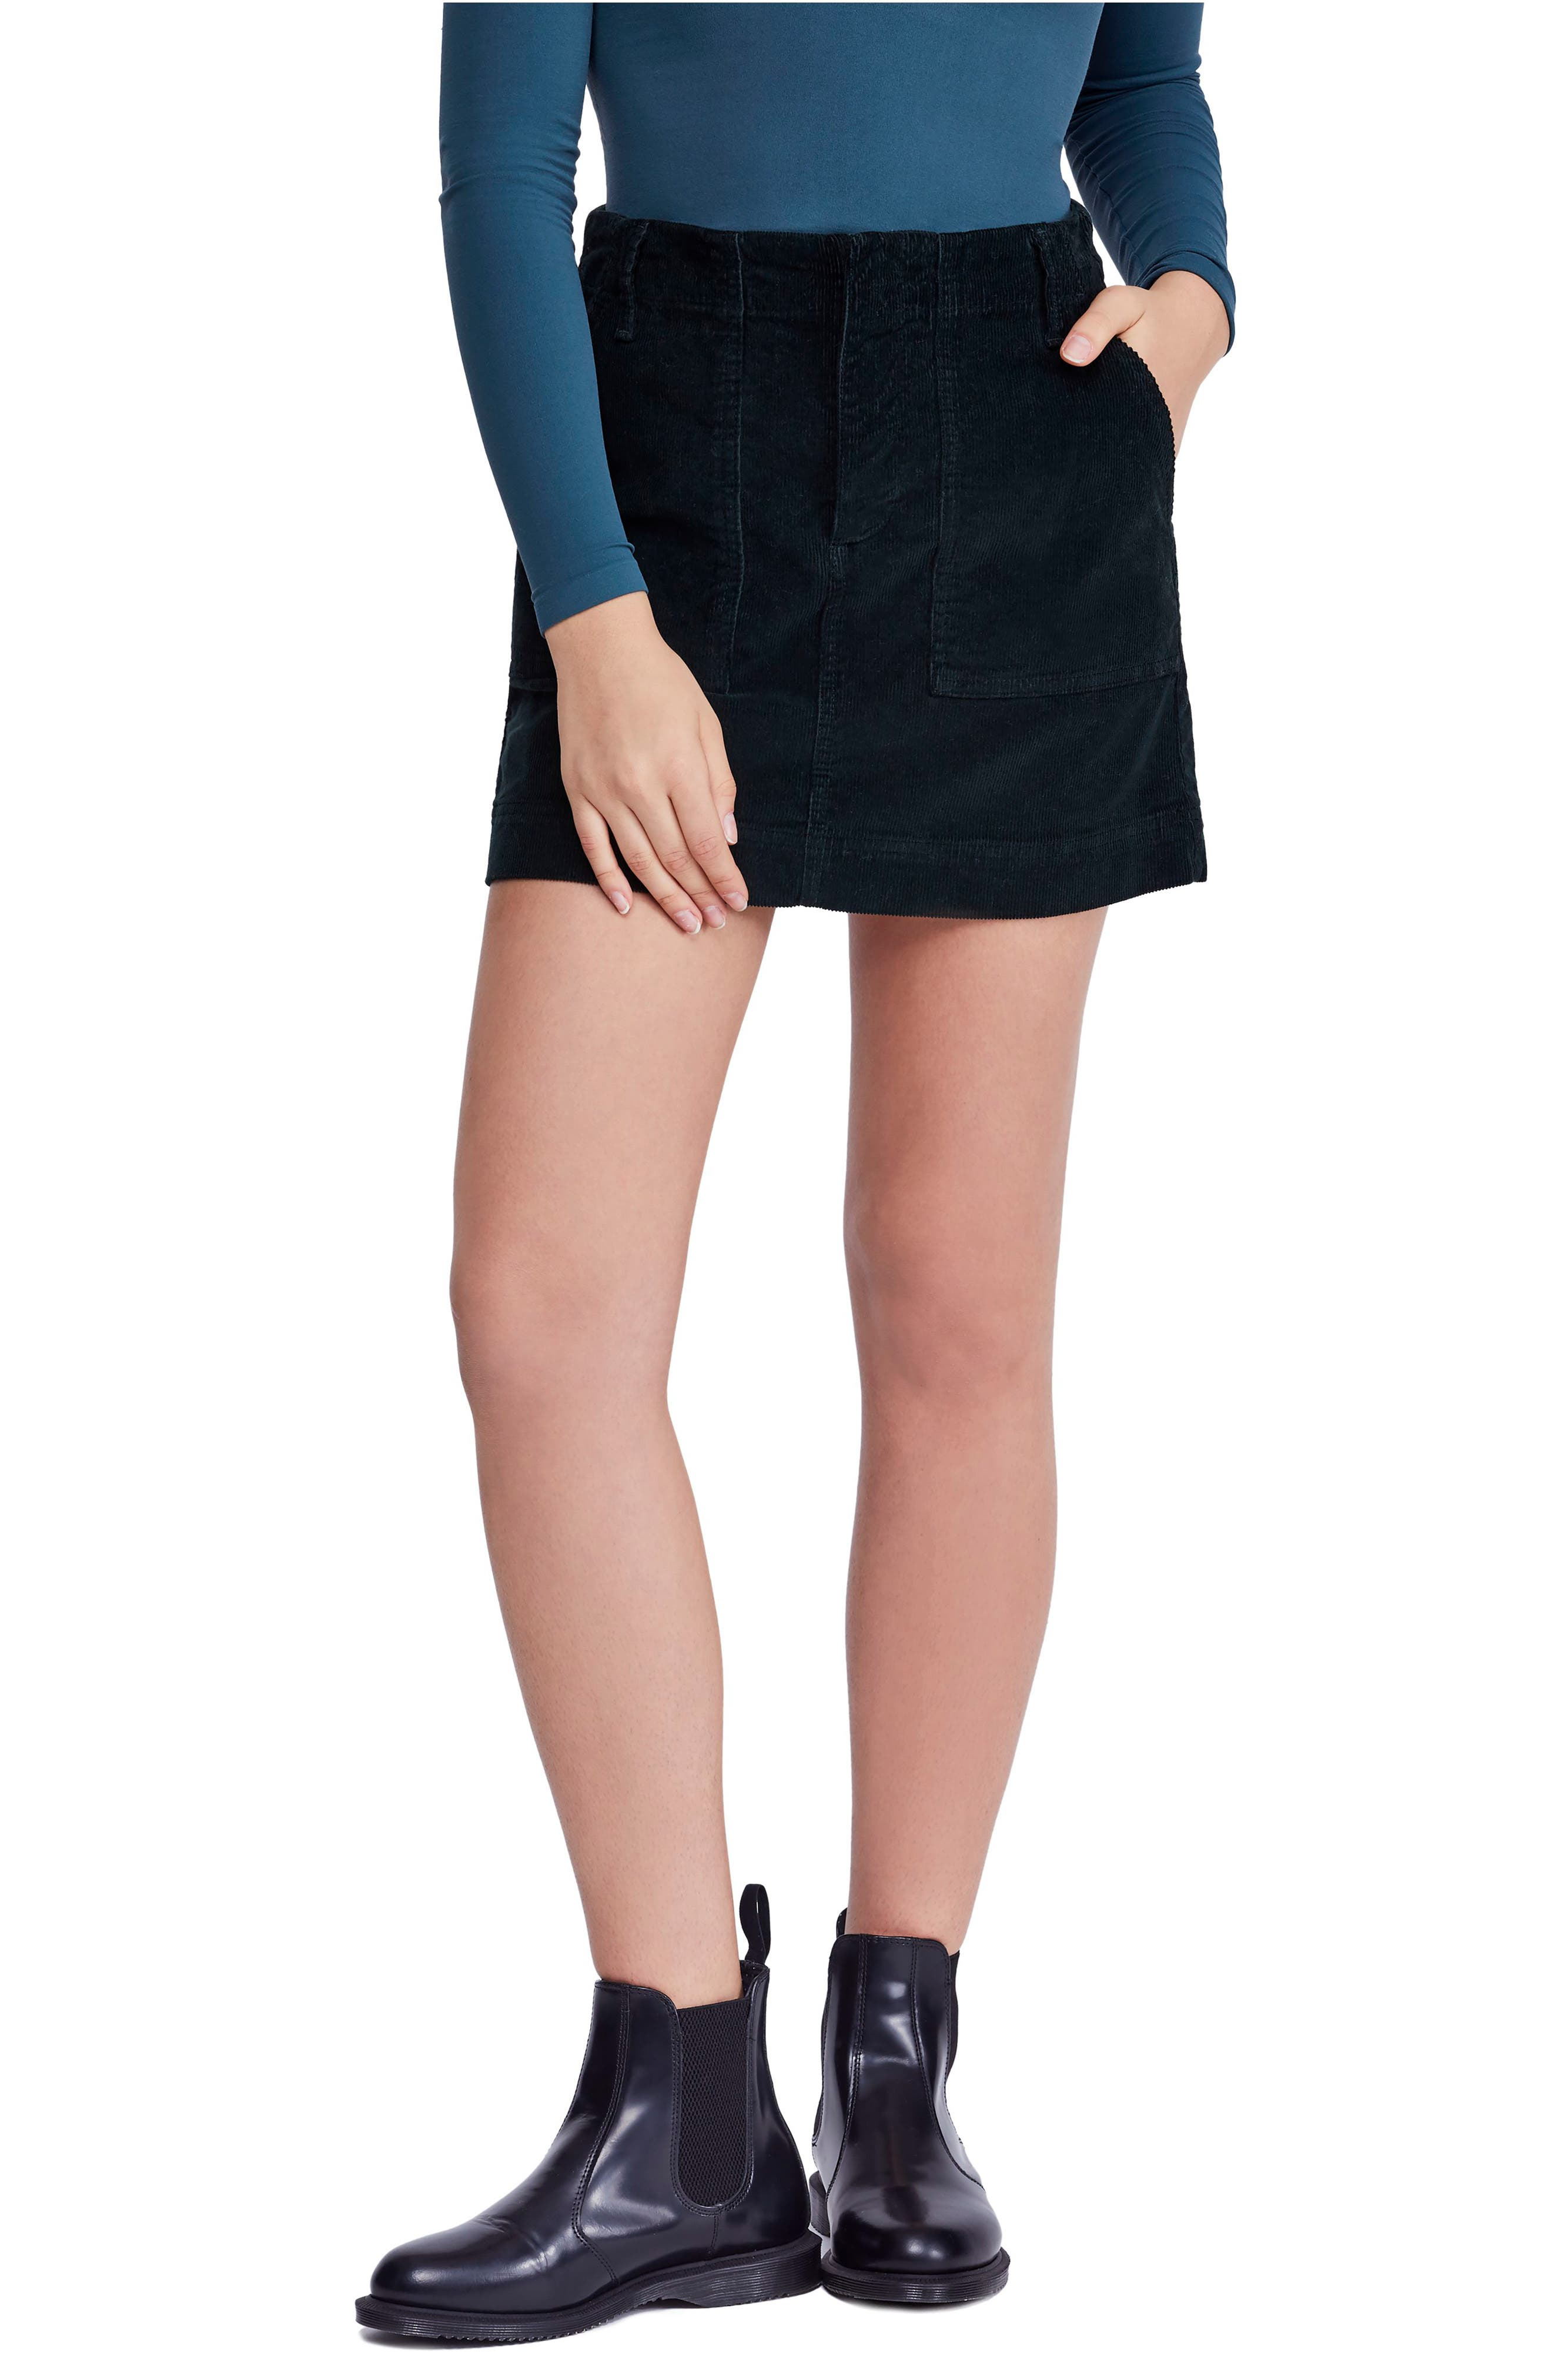 Bdg Urban Outfitters Corduroy Utility Skirt, Green